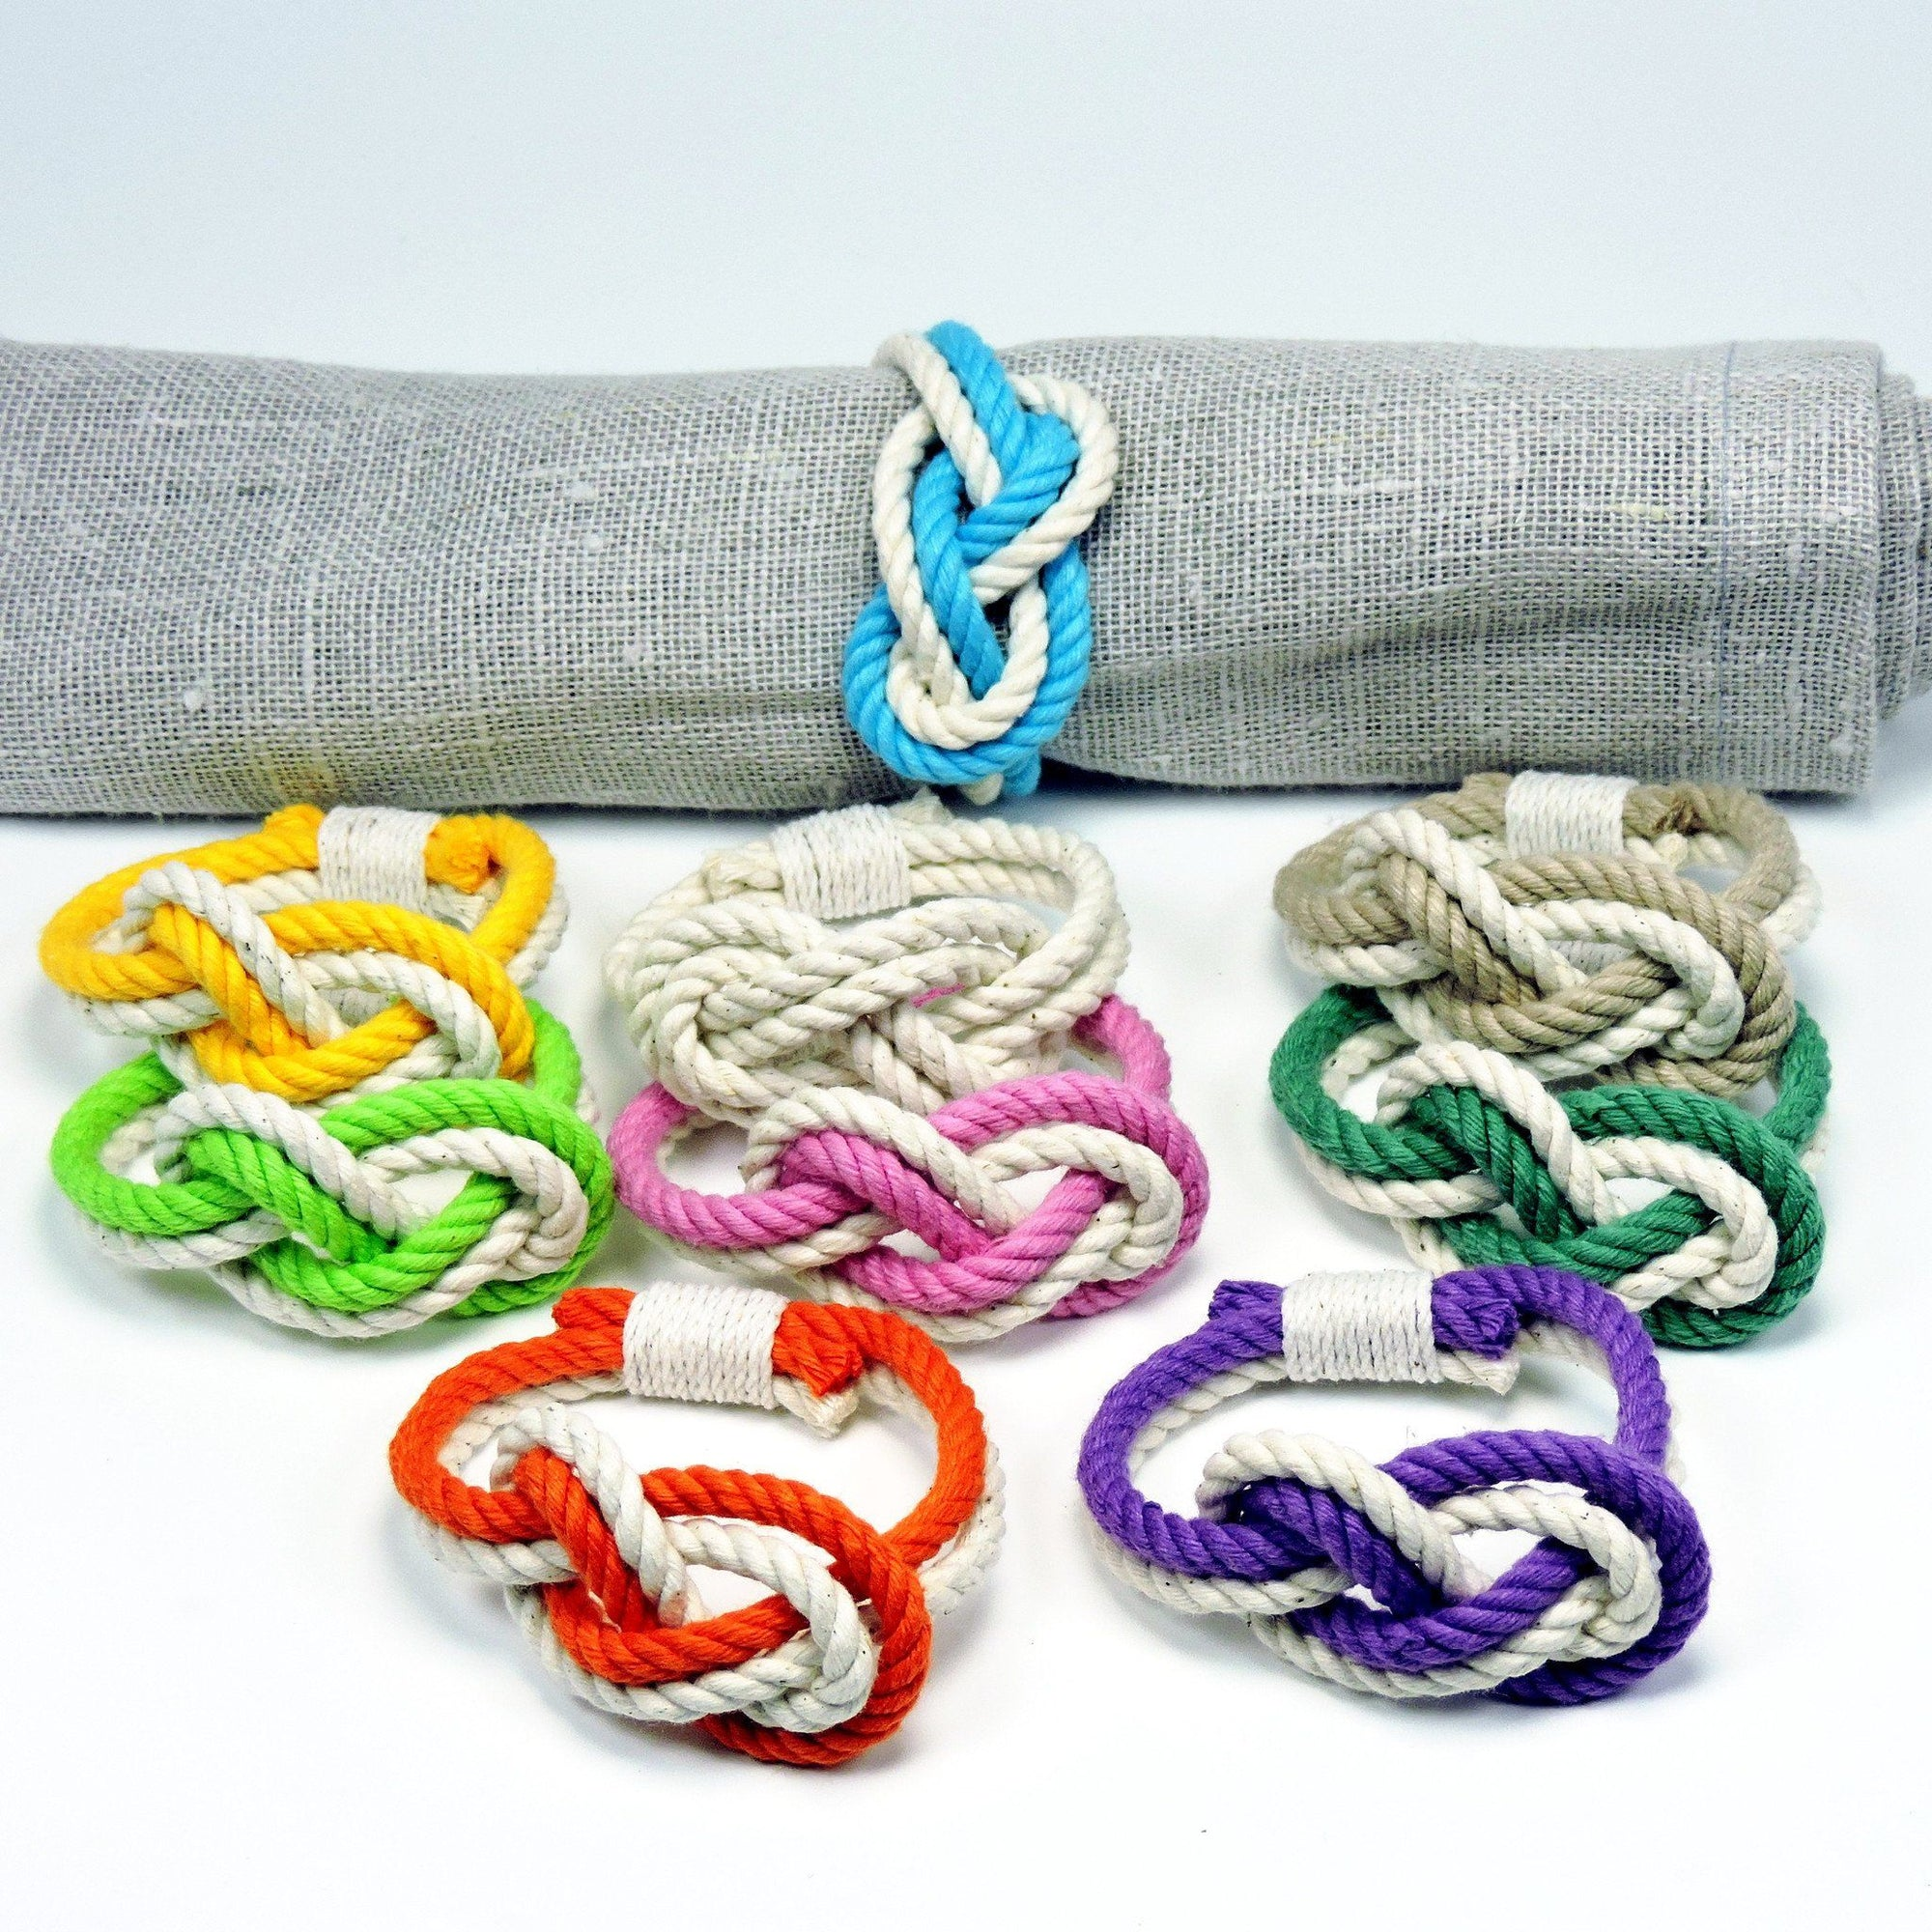 Nautical Figure Eight Infinity Knot Napkin Rings, Tropical Colors, Set of 4 Handmade sailor knot American Made in Mystic, CT $ 11.20